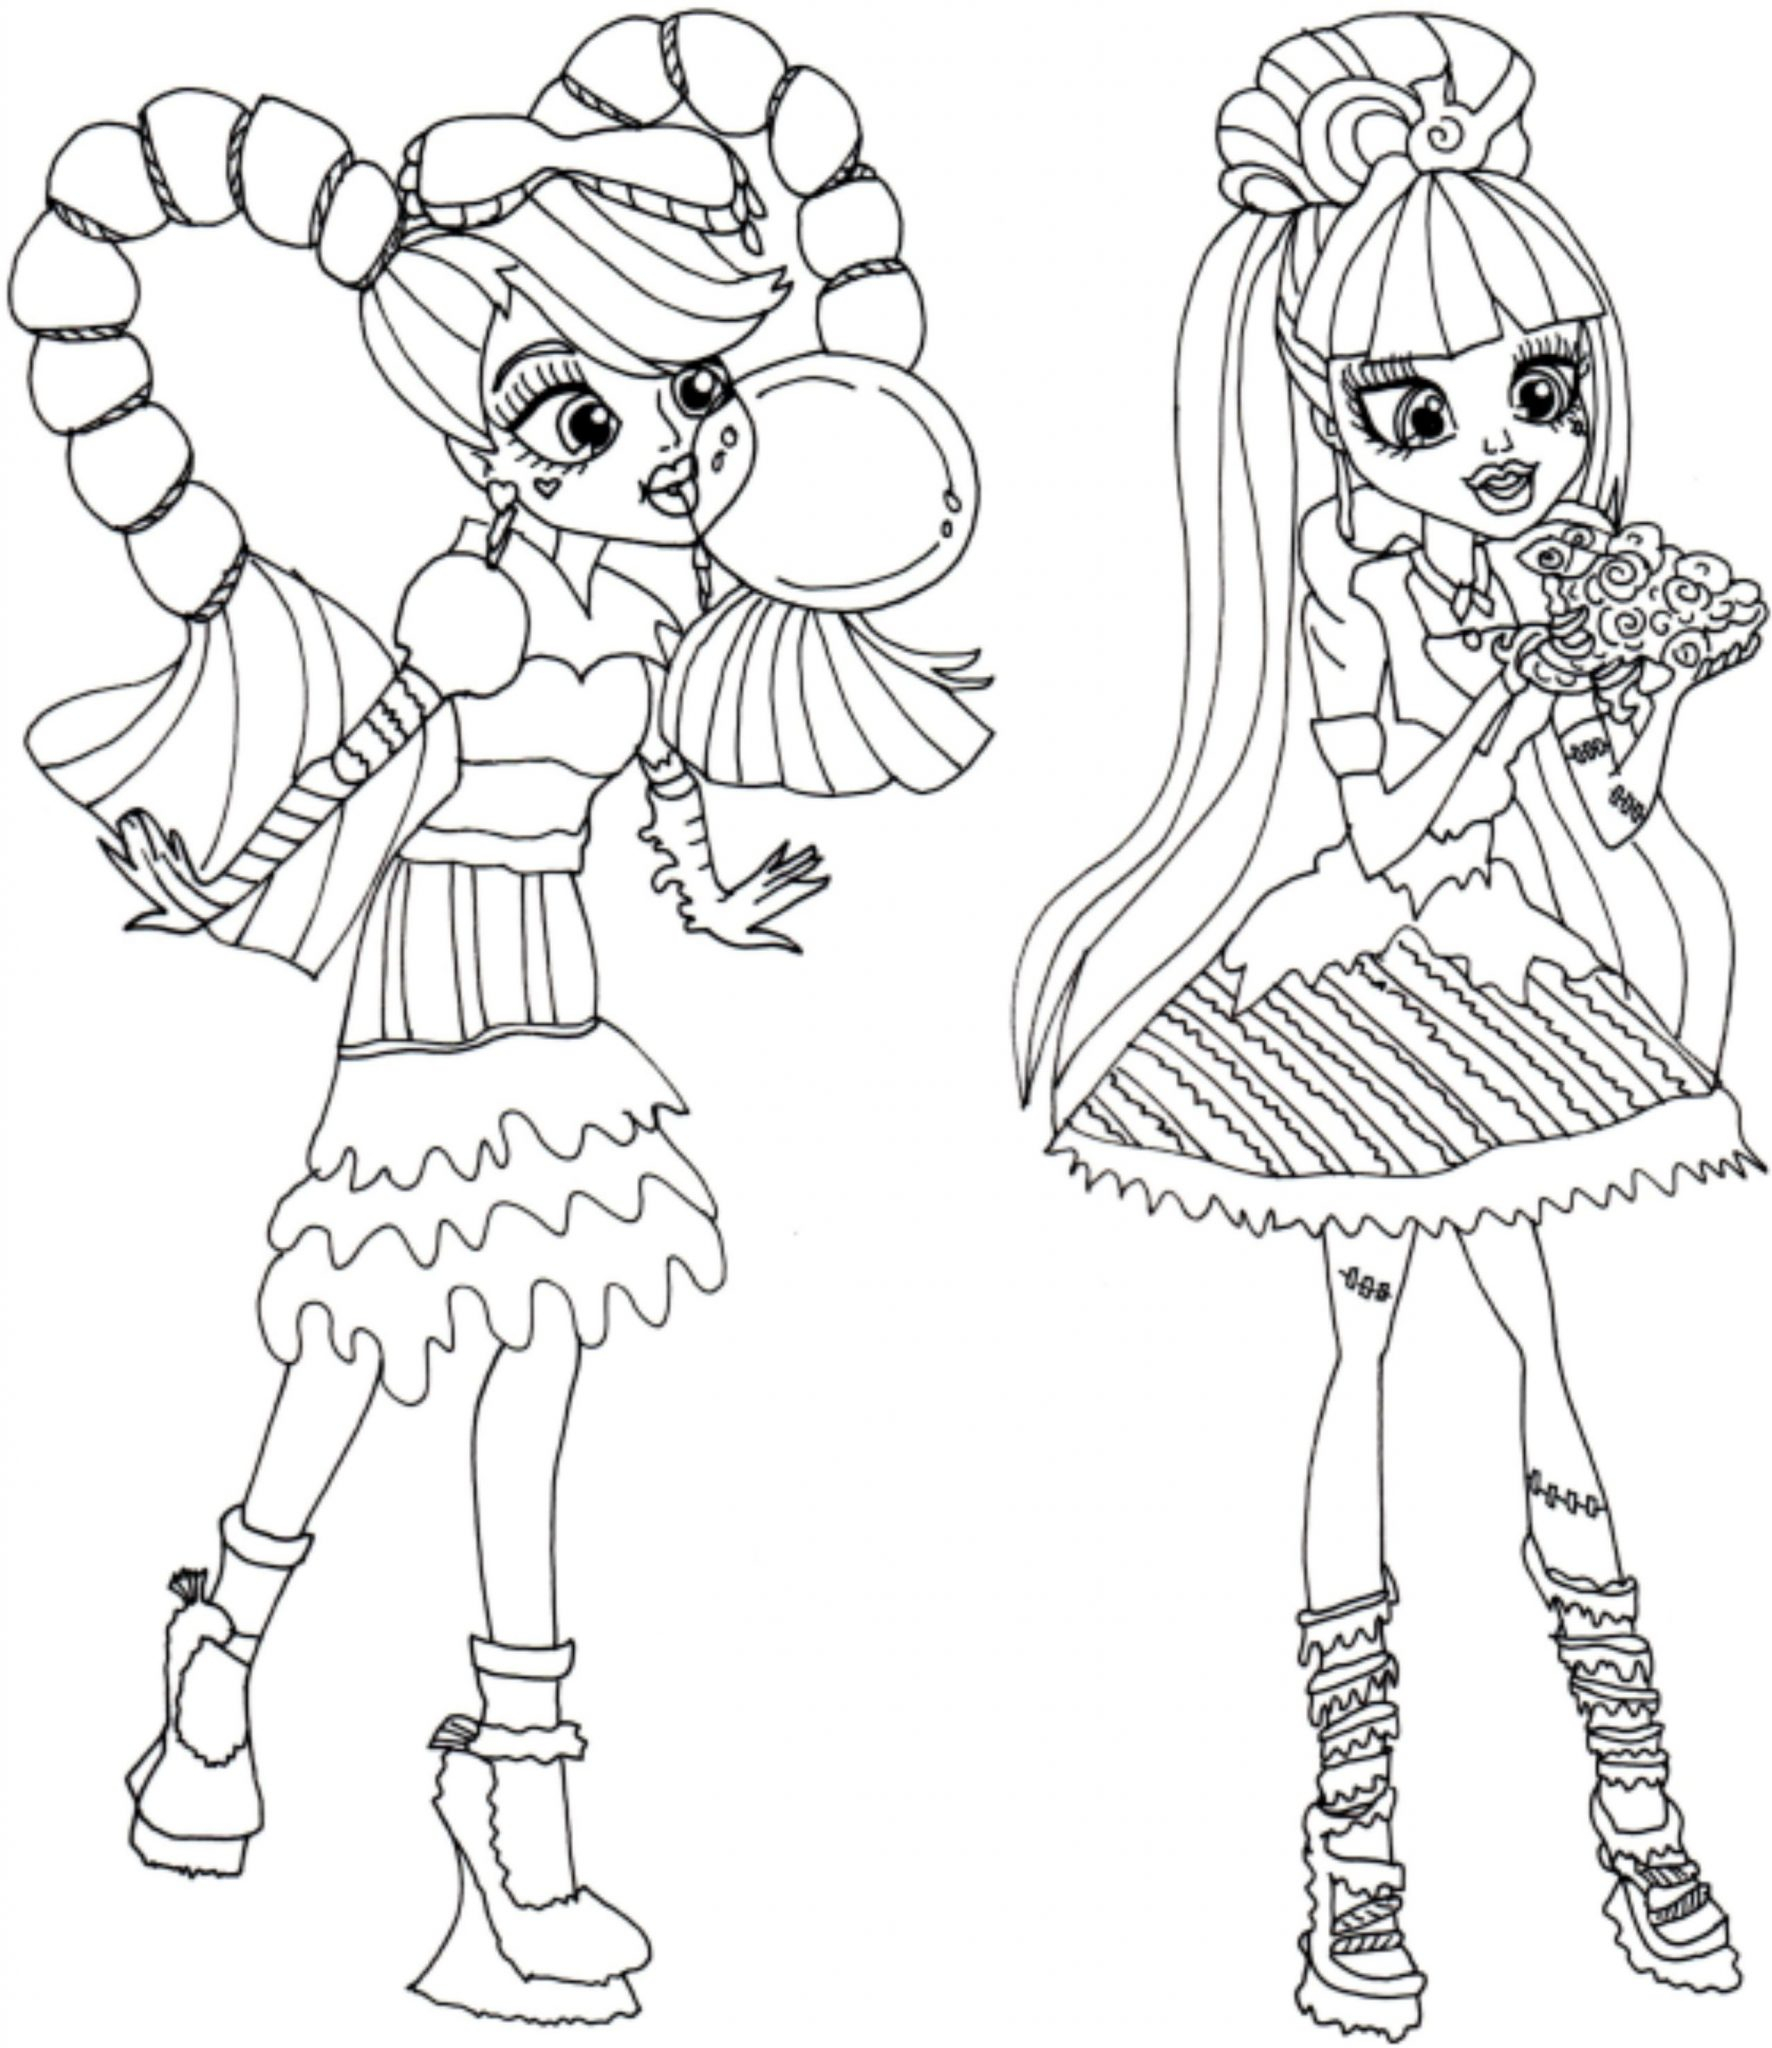 Inspiration Free Printable Monster High Coloring Pages Brand Boo Download Of Exquisite Monster High Printables Coloring Pages Free Gallery